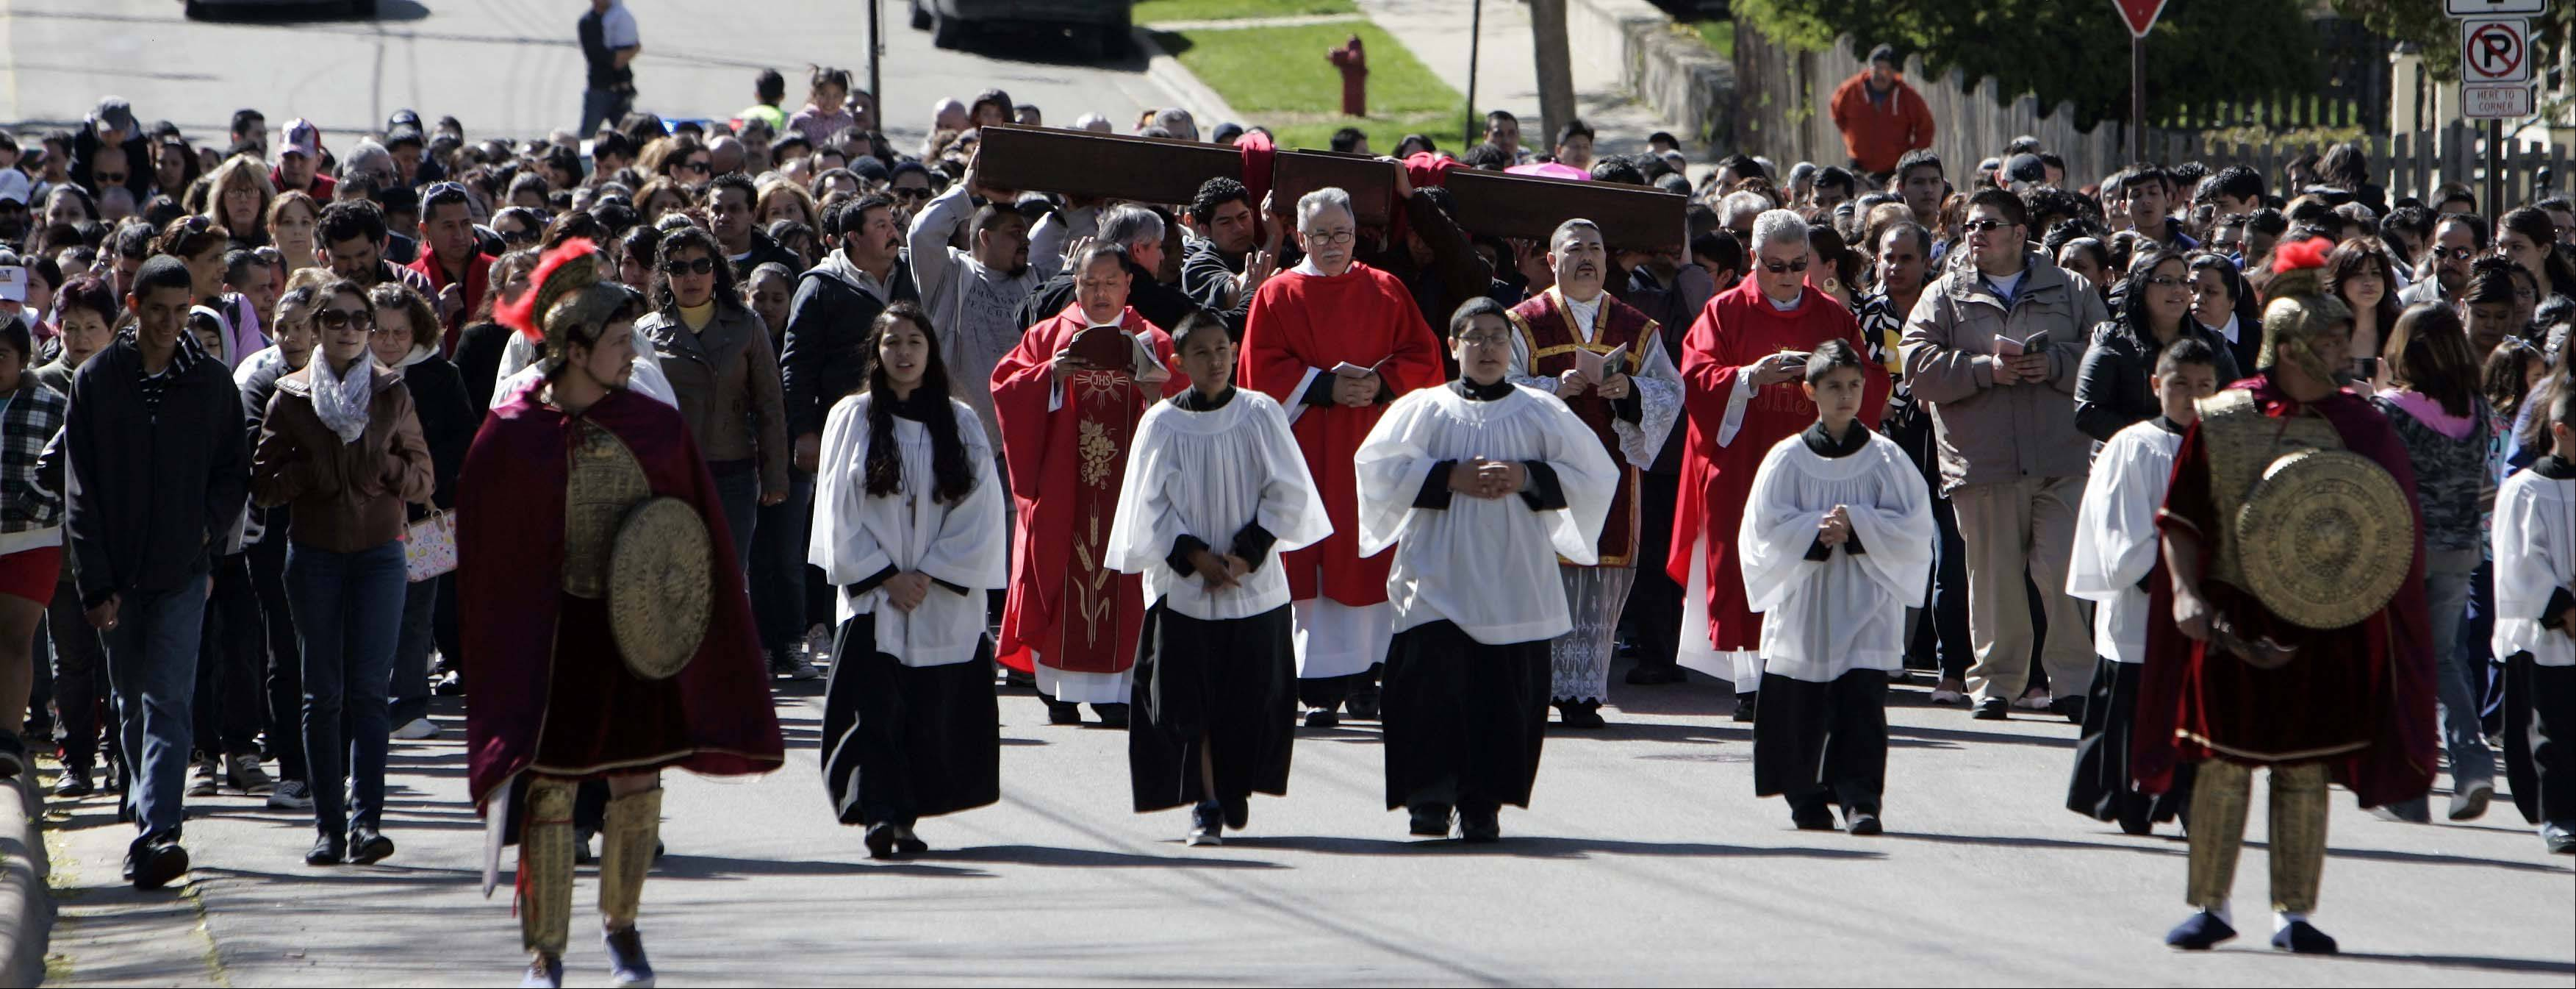 Hundreds crowded the streets during St. Joseph's Annual passion march along Division Street in Elgin.